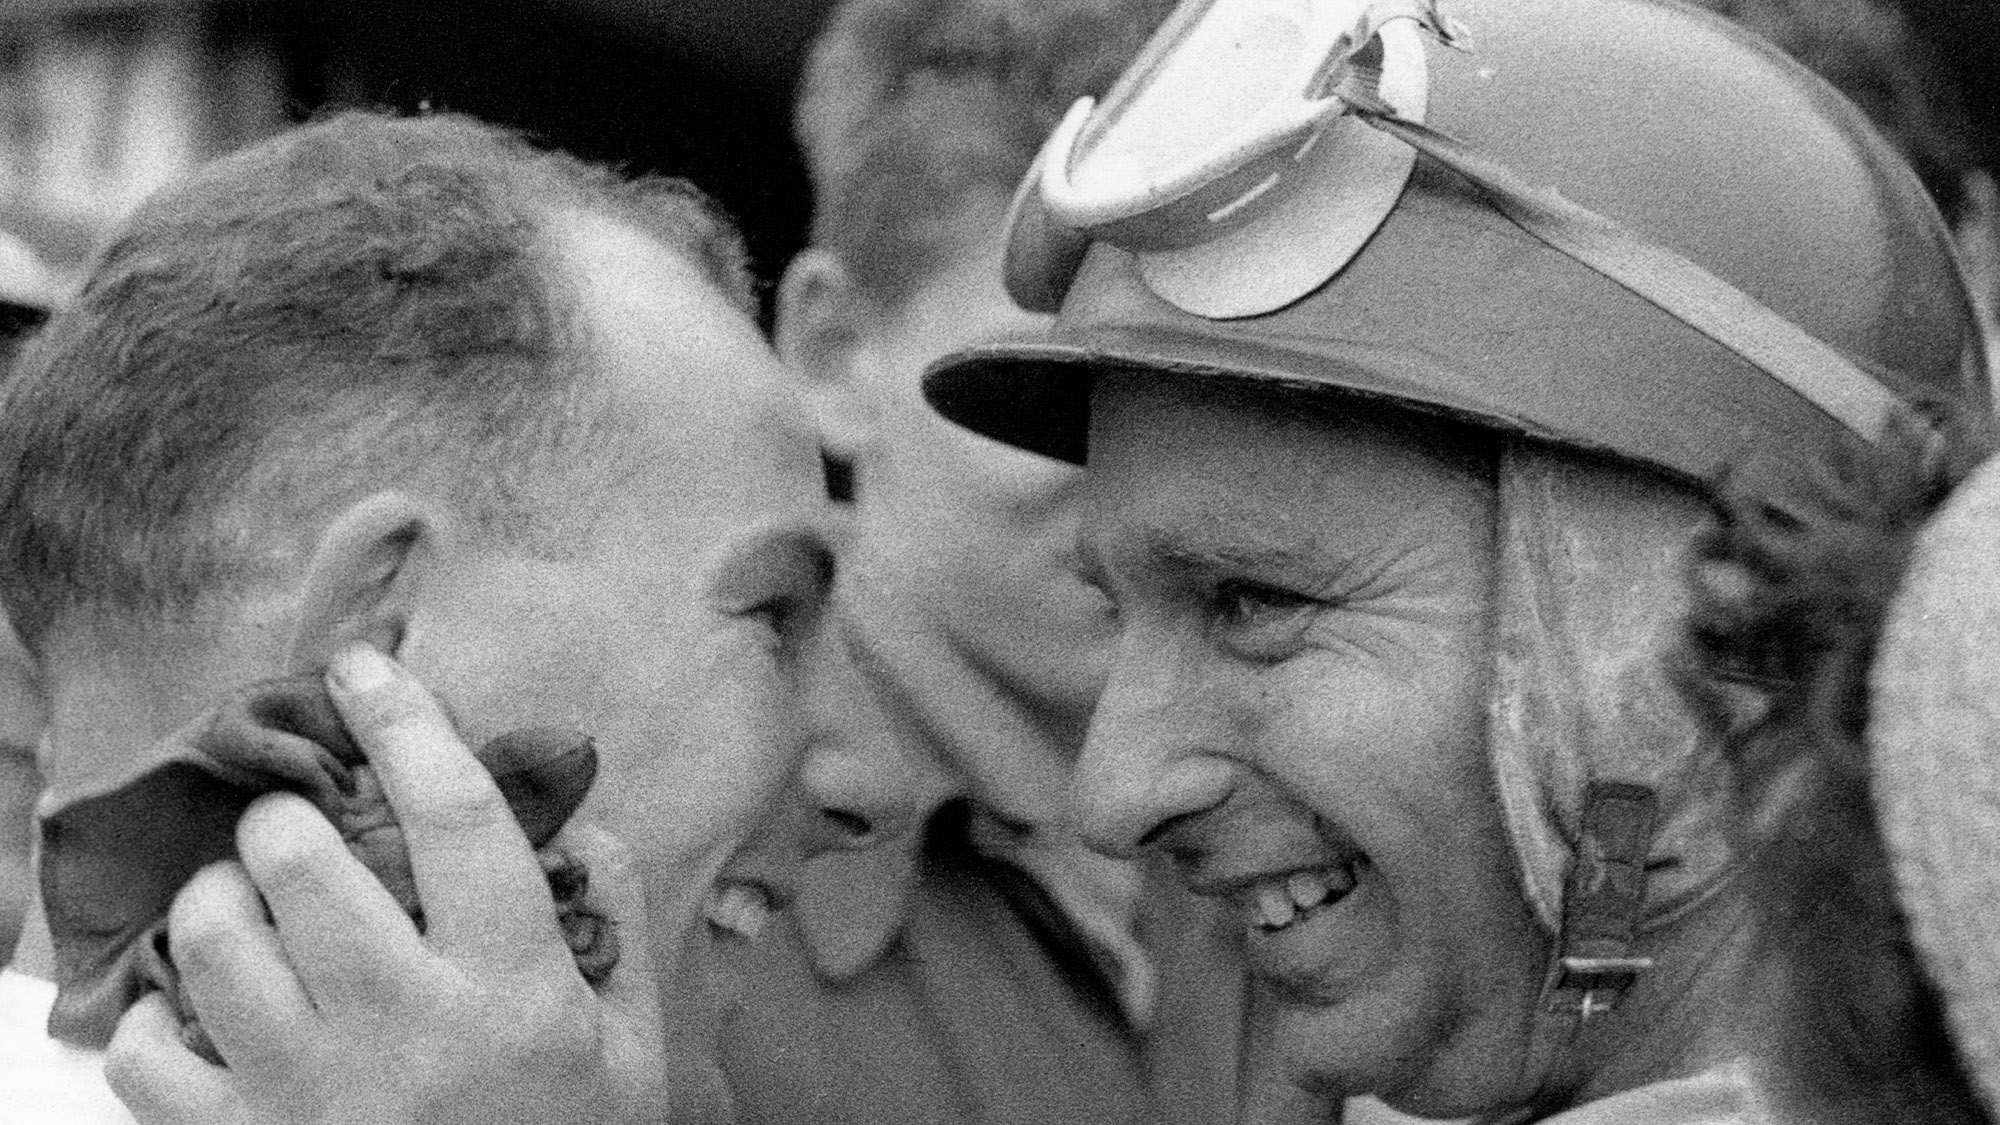 Stirling Moss and Juan Manuel Fangio smile after their 1-2 finish at the 1955 British Grand Prix at Aintree